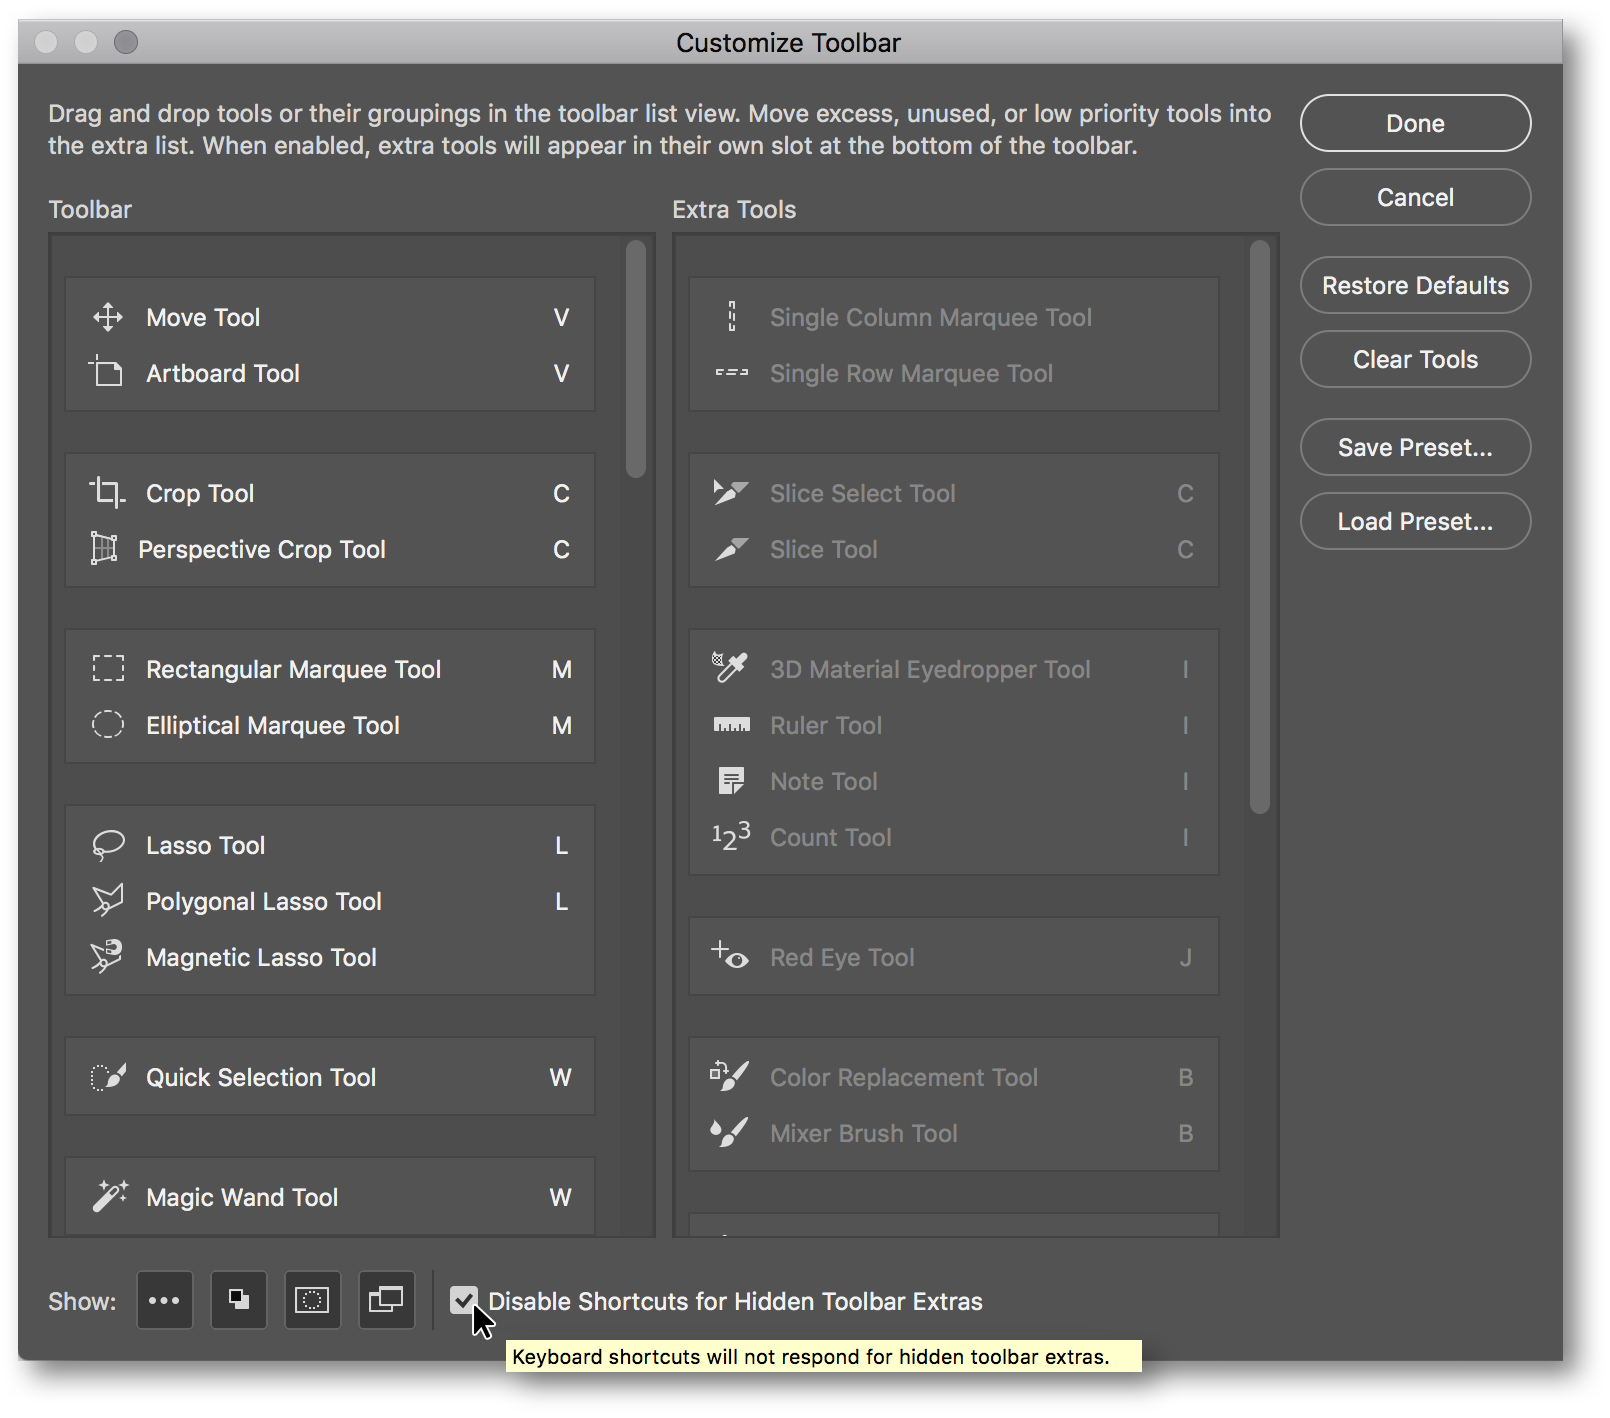 Customize Toobar dialog box